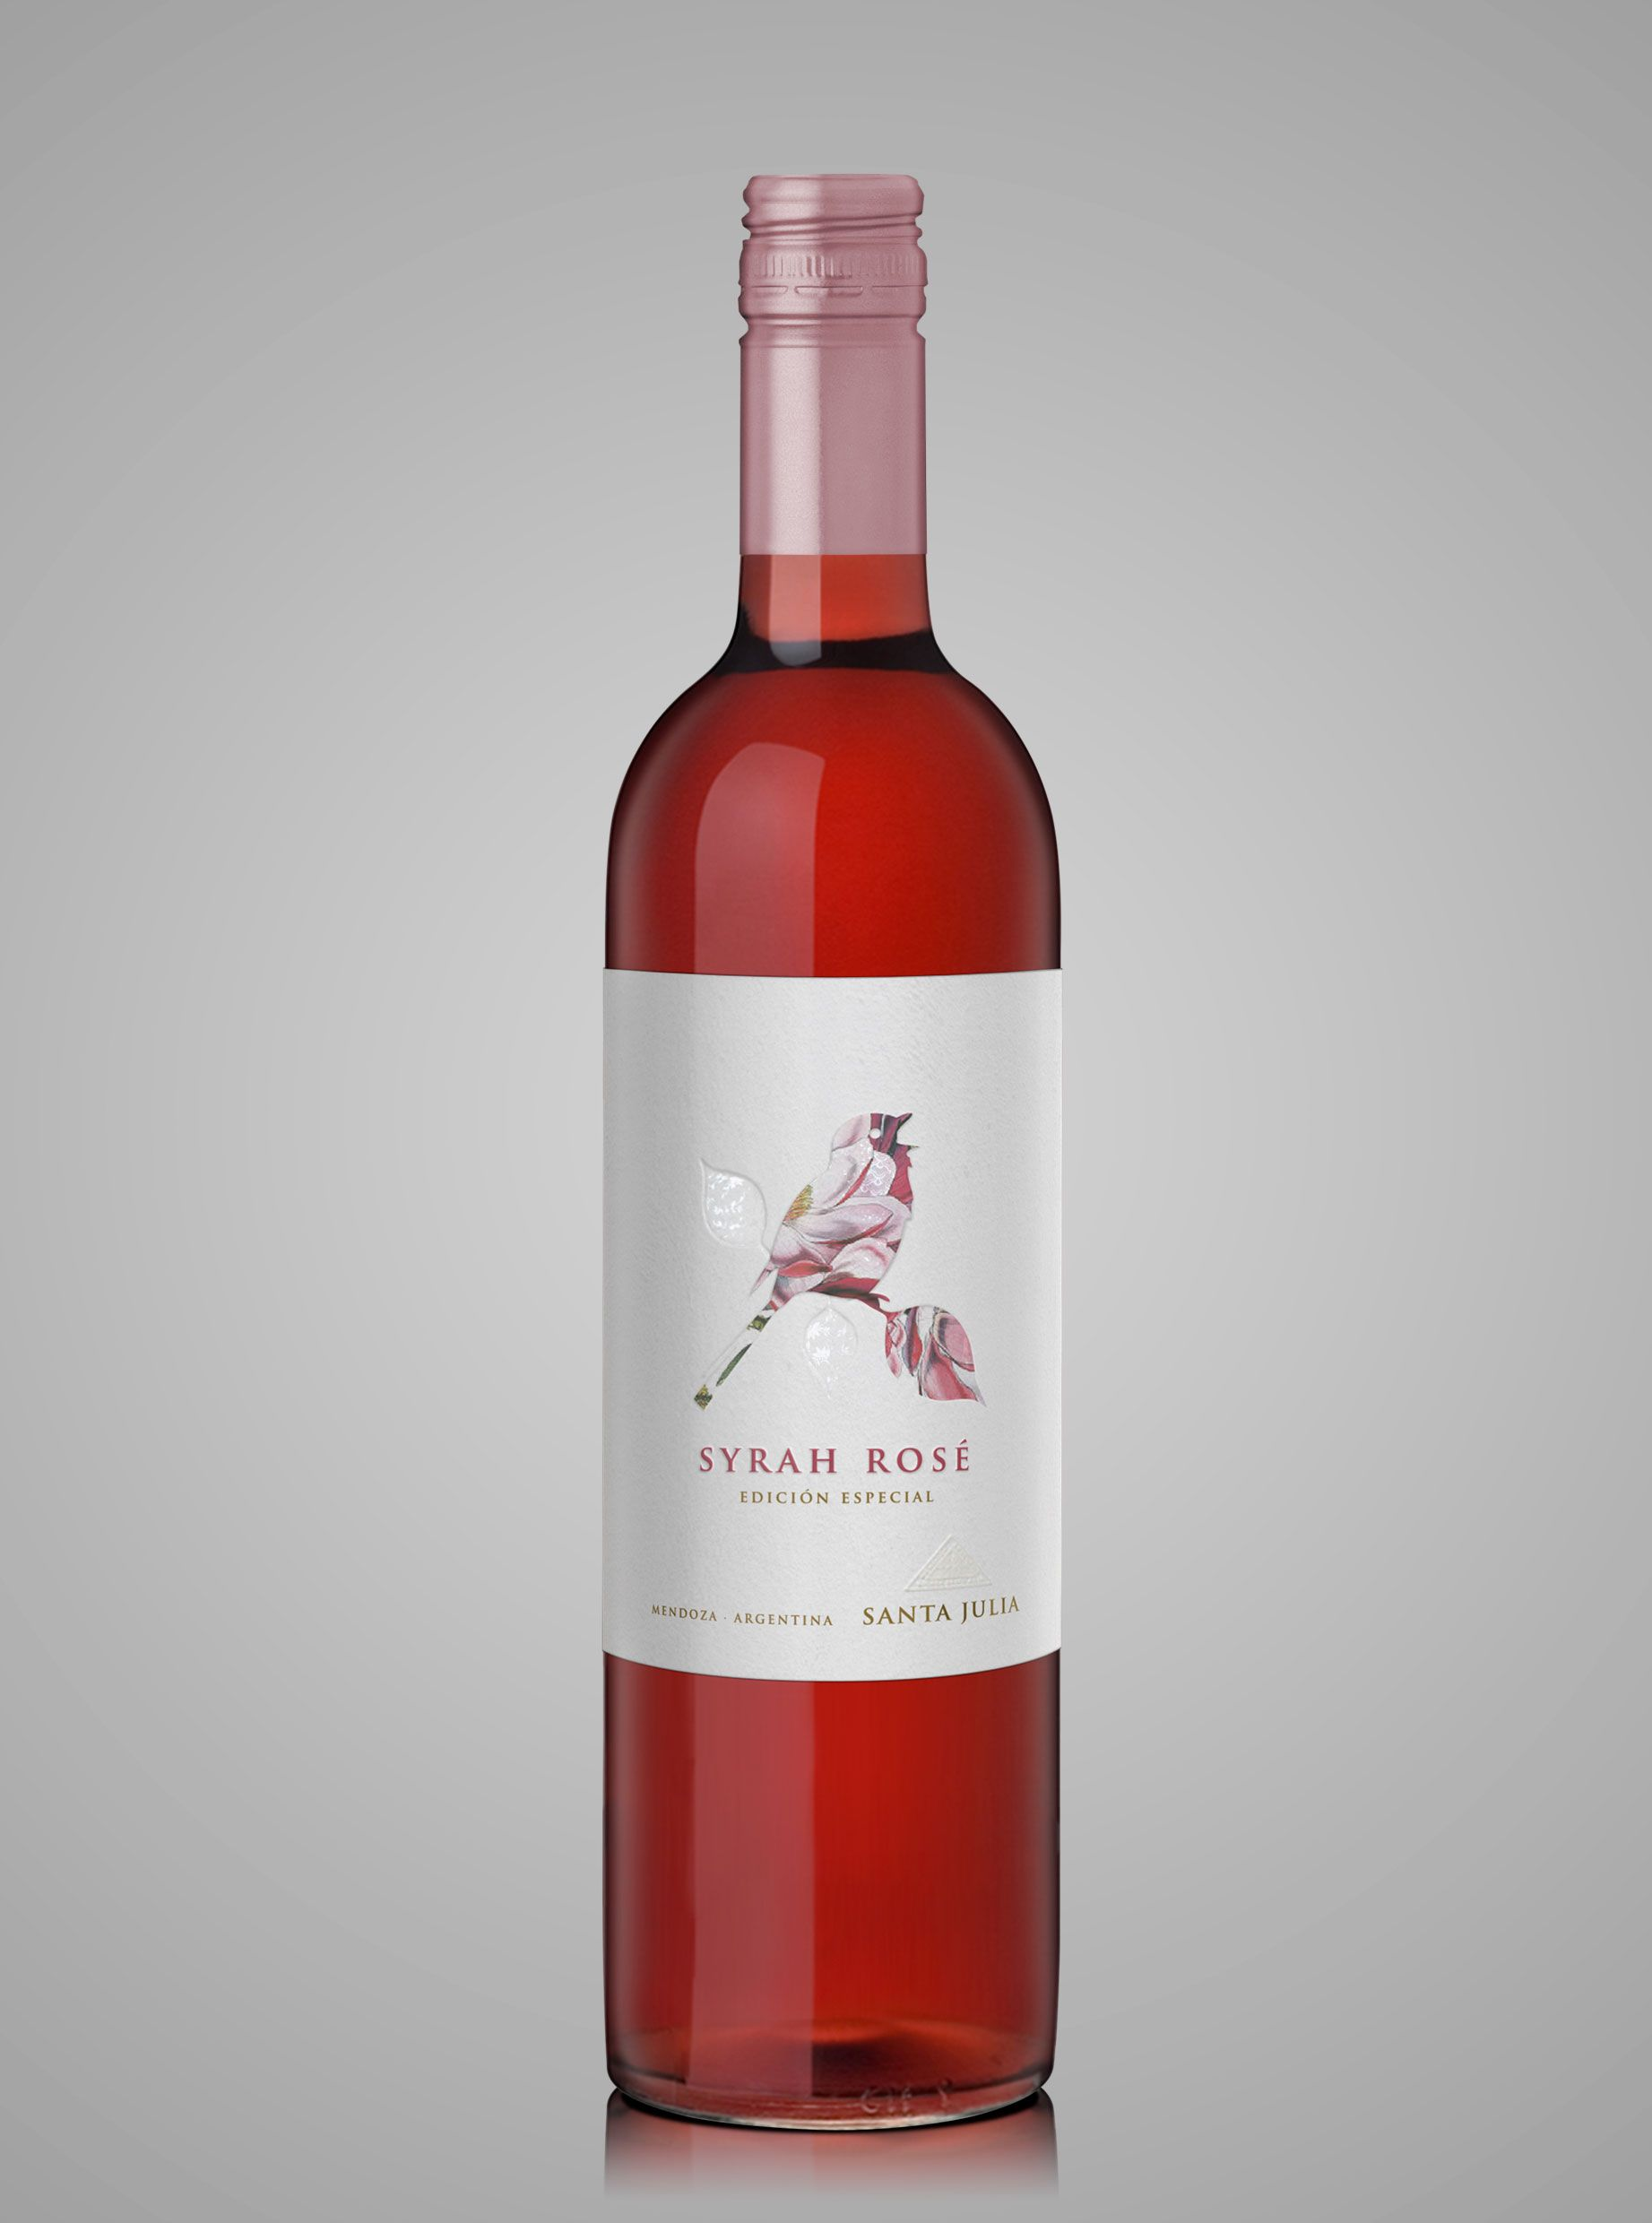 Syrah Rose Santa Julia Wine Bottle Design Wine Label Design Wine Design